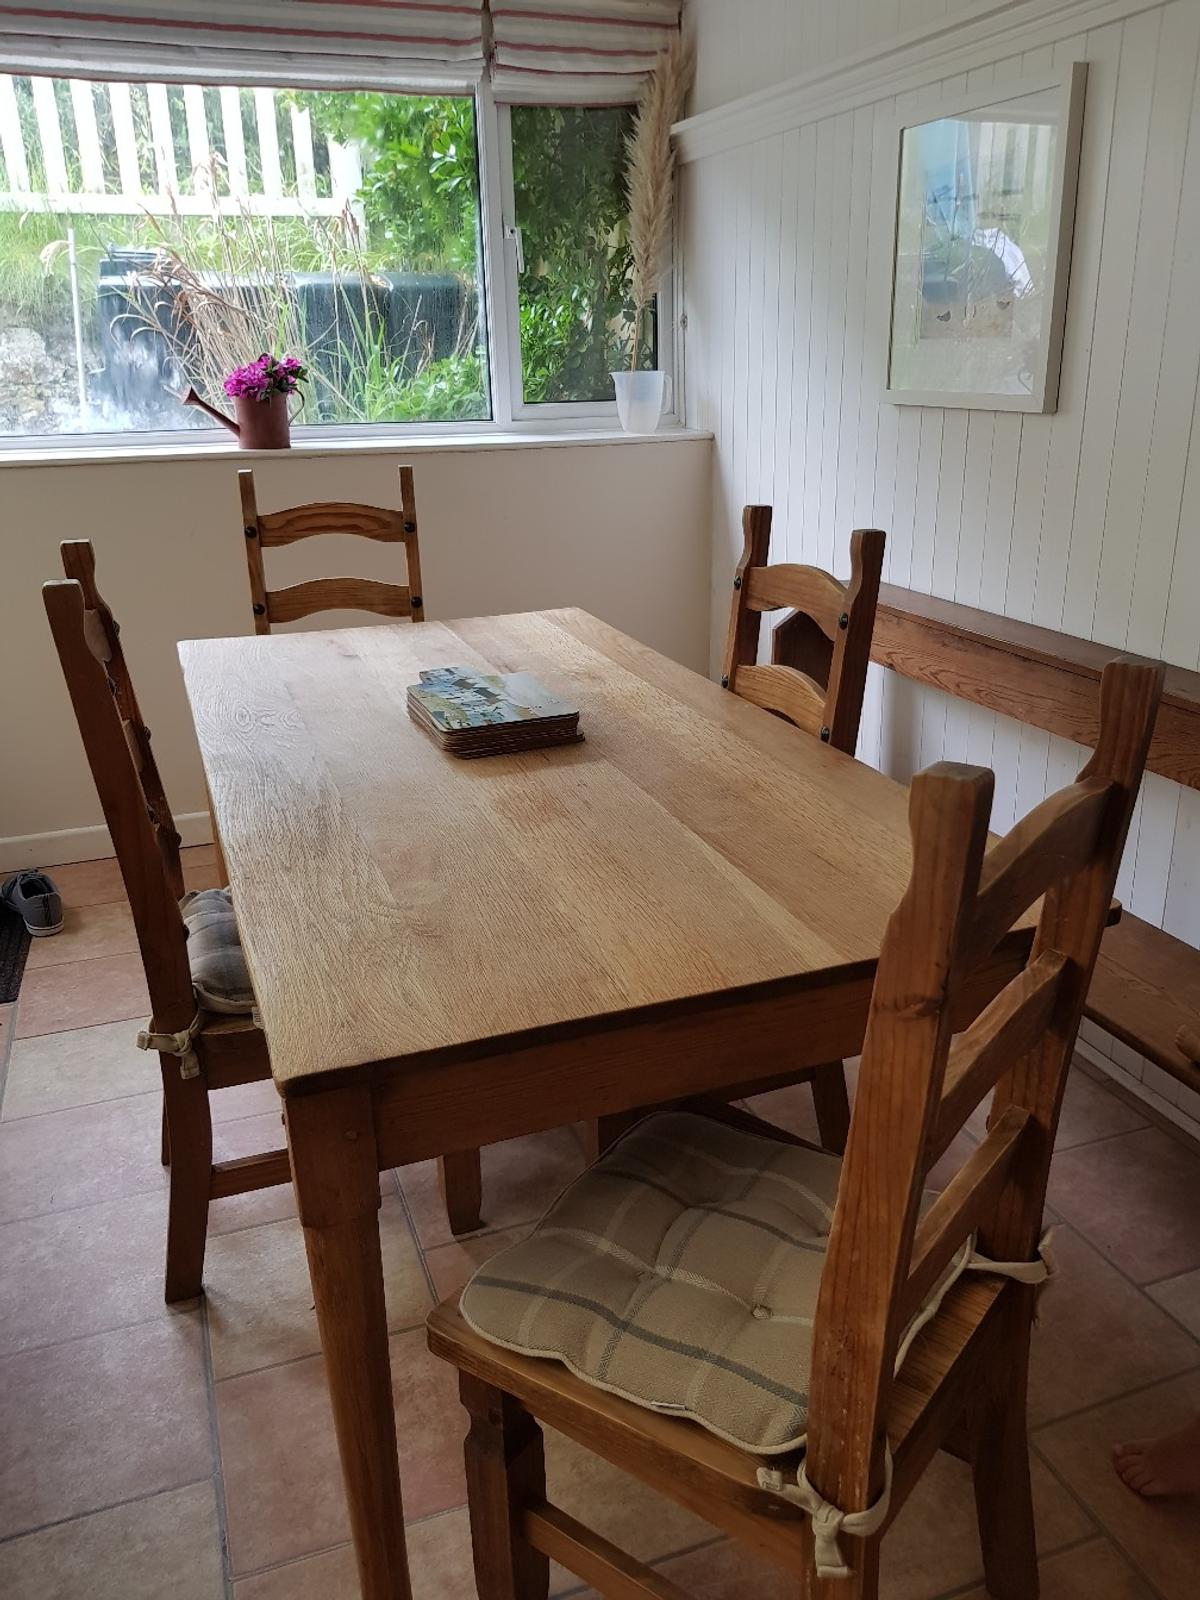 Dining Table Chairs And Church Pew Or Bench